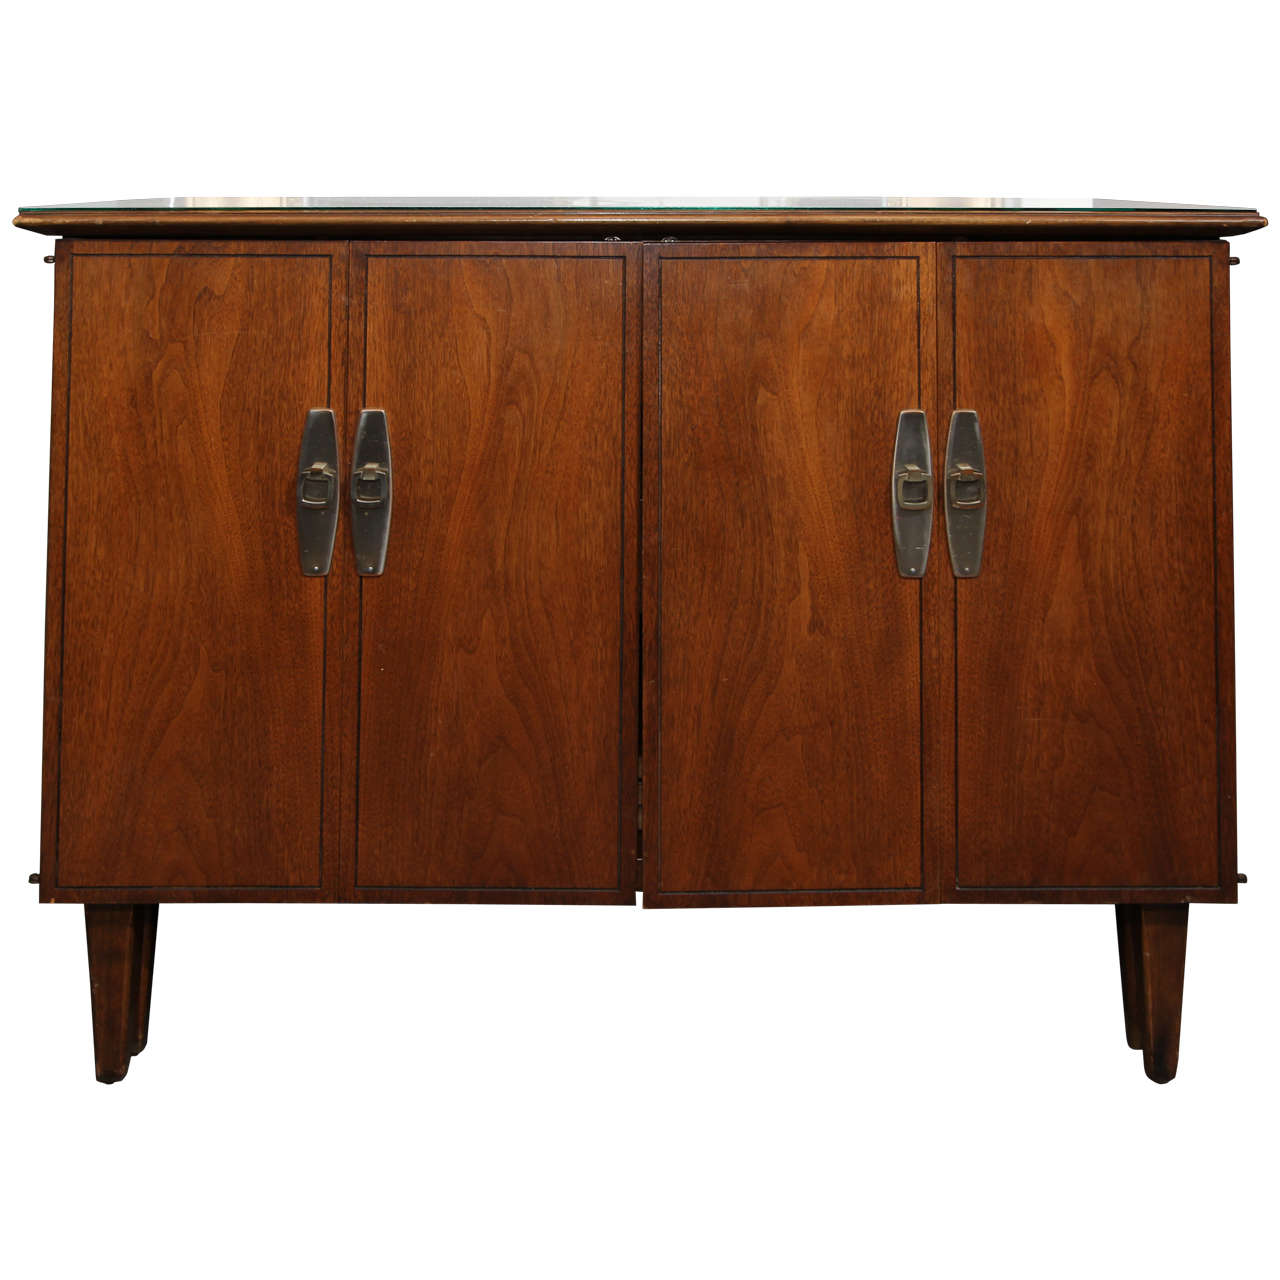 Hideaway Table - mid century cabinet that opens into table with 3 leaves  1